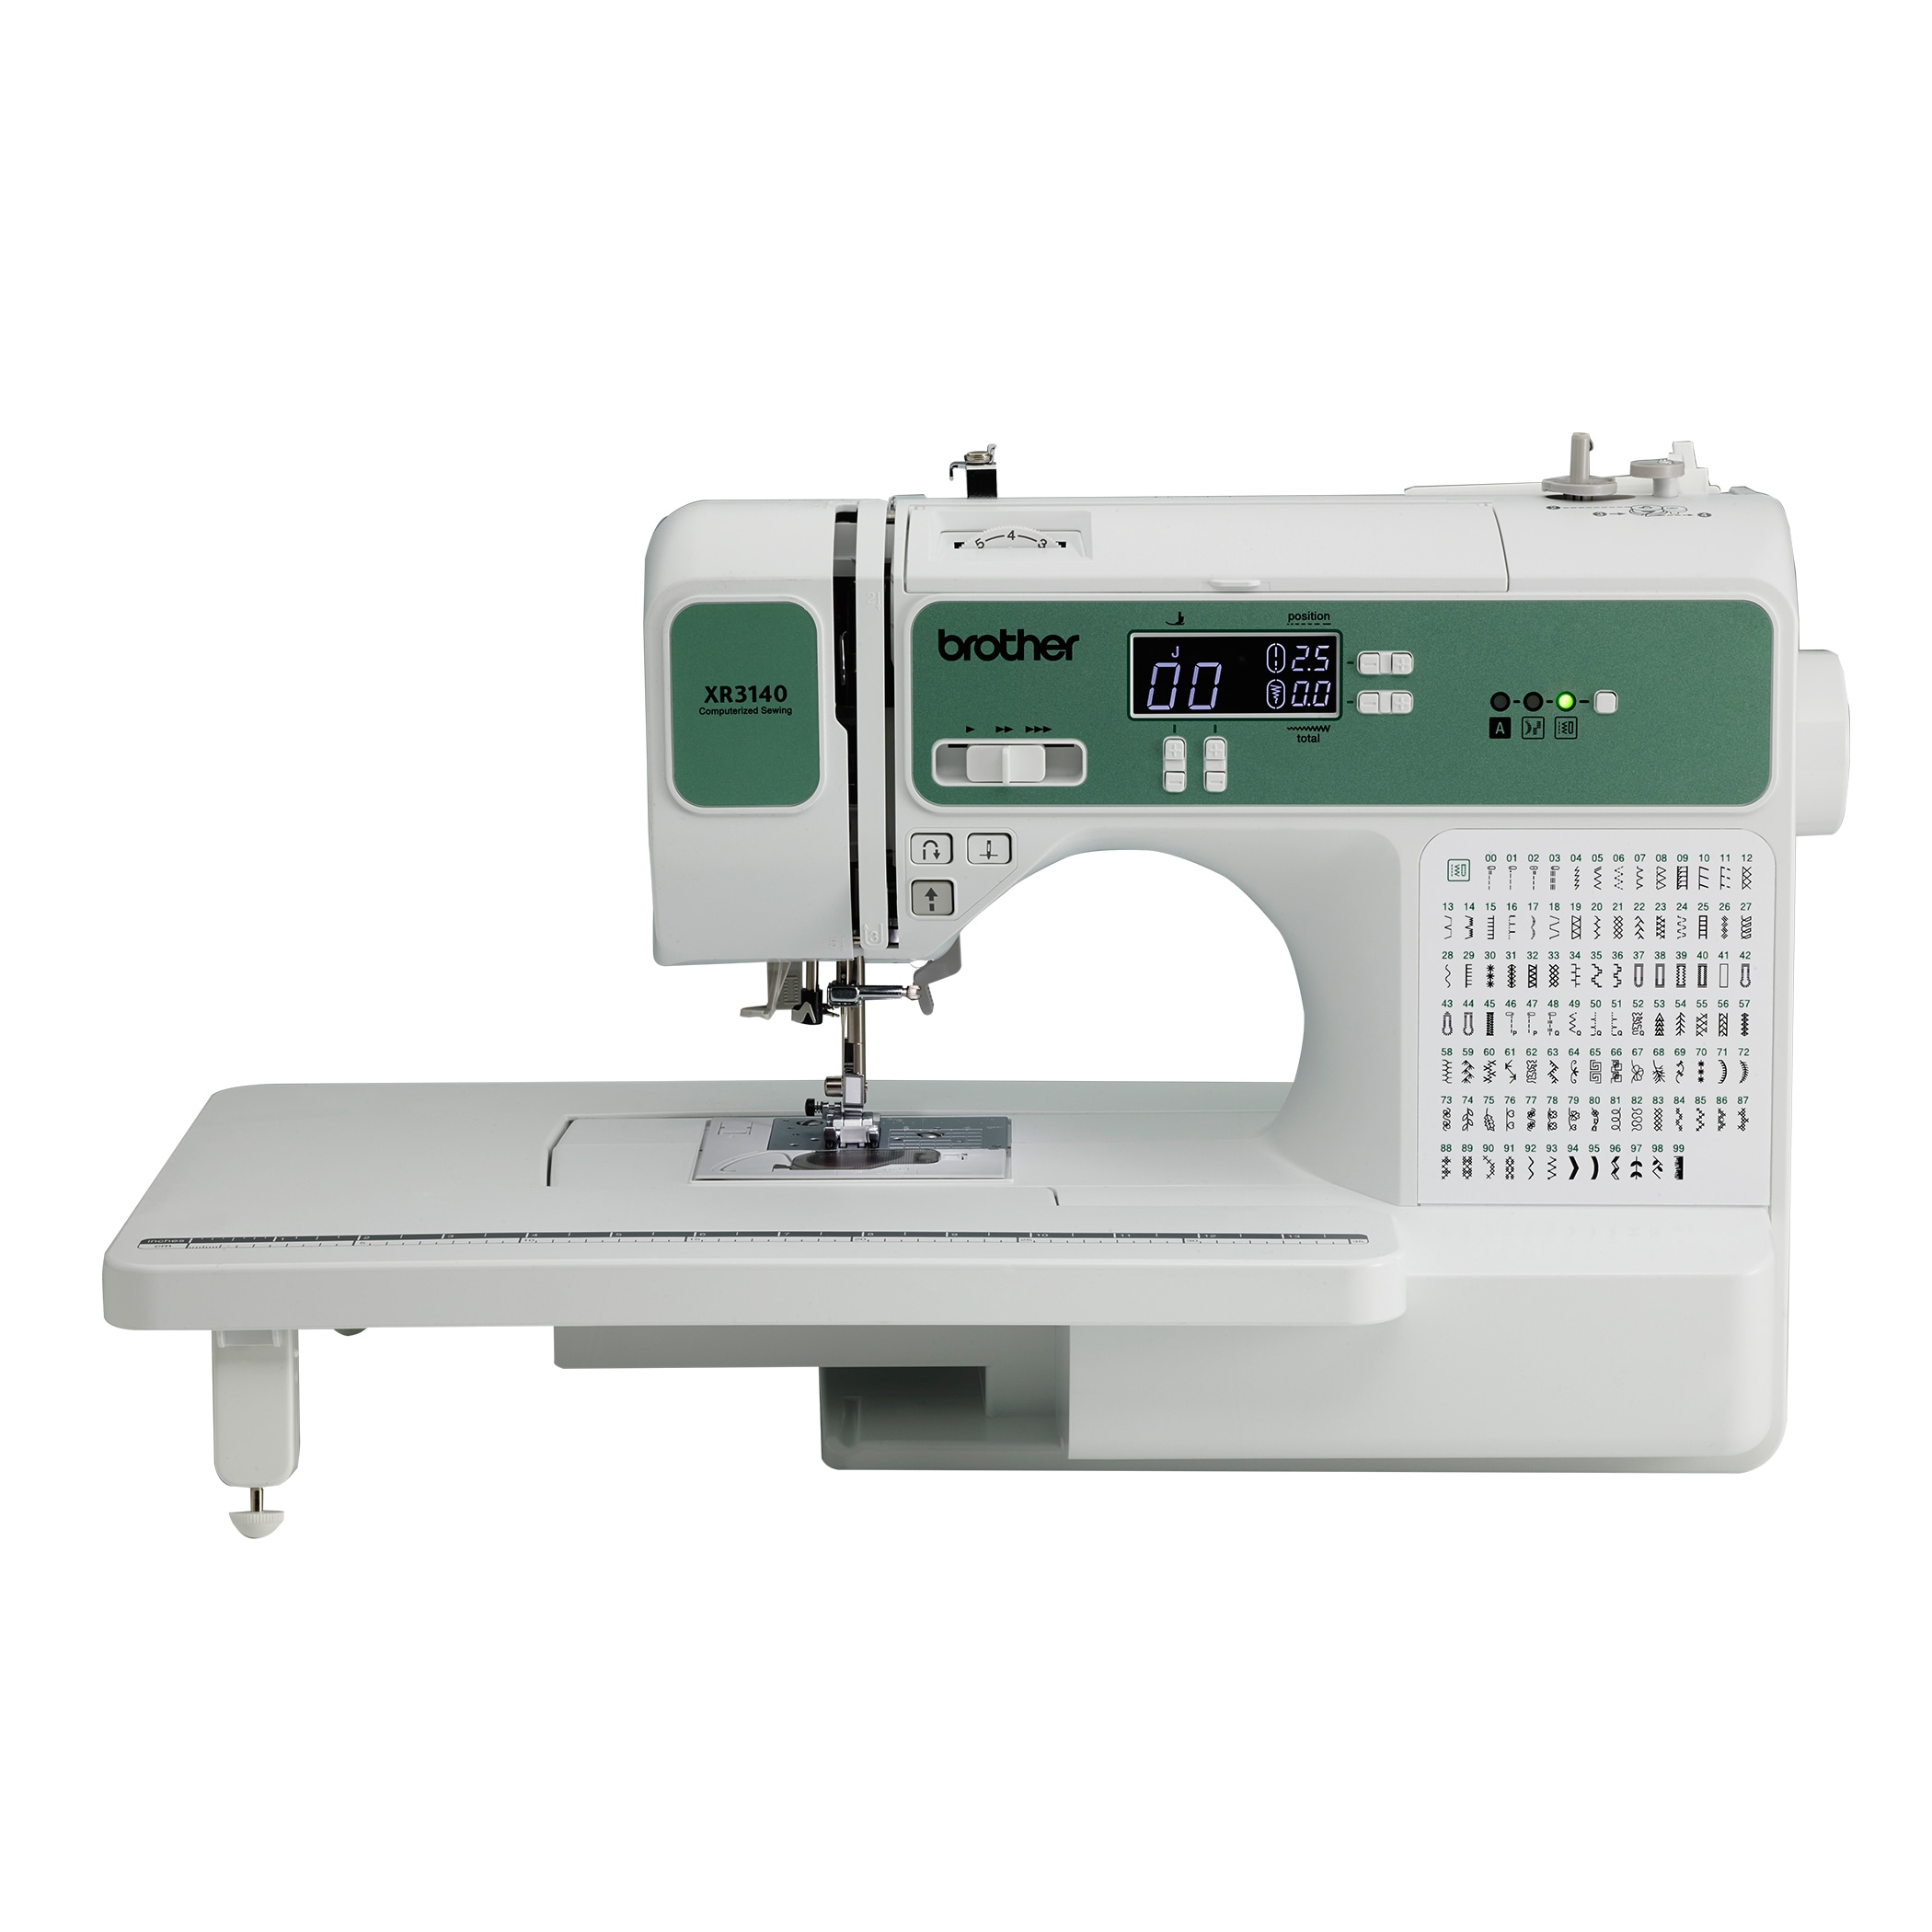 Brother Xr 3140 Computerized Sewing Machine & Daisy Wheel...